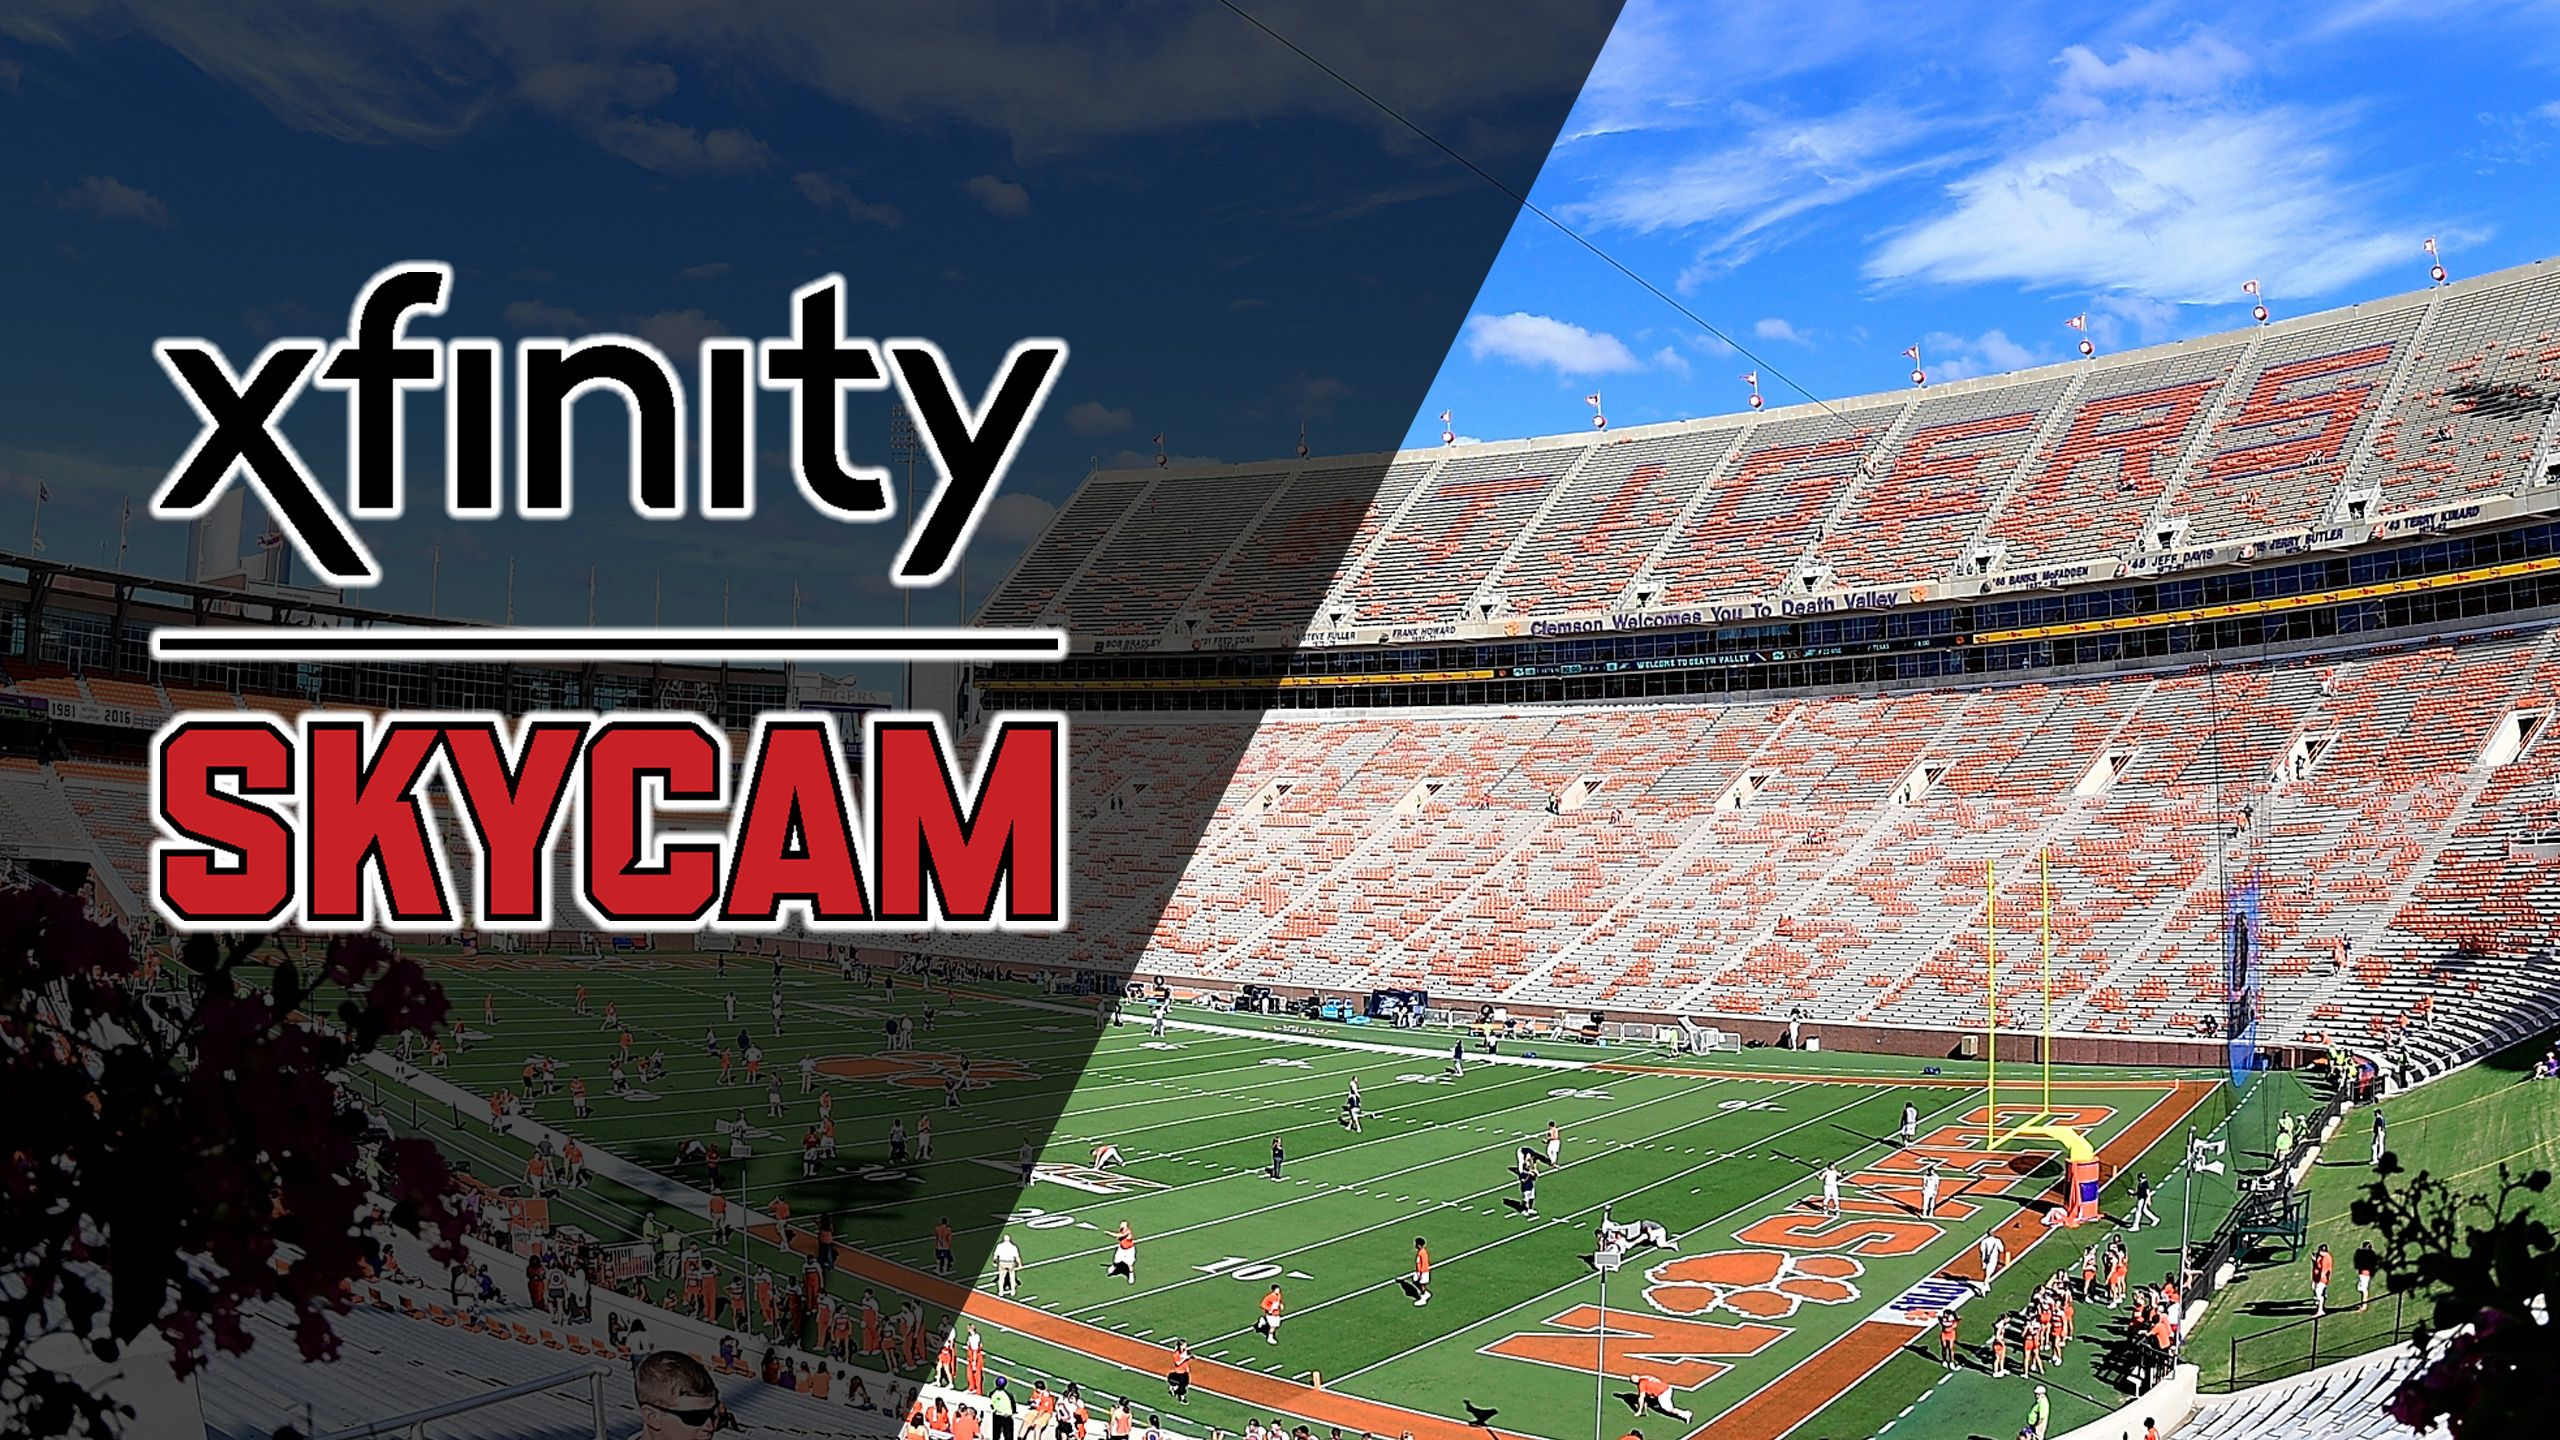 Skycam - #16 NC State vs. #3 Clemson (Football)